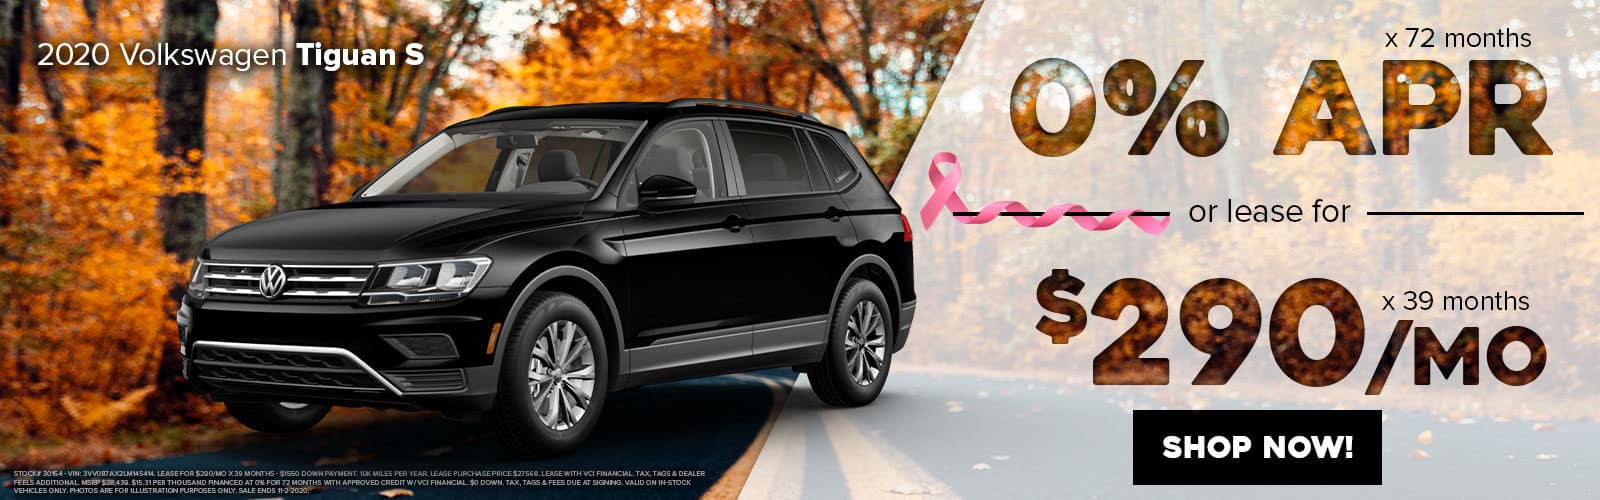 10_20_Wyoming_Valley_VW_Web_Banners-2020-Tiguan